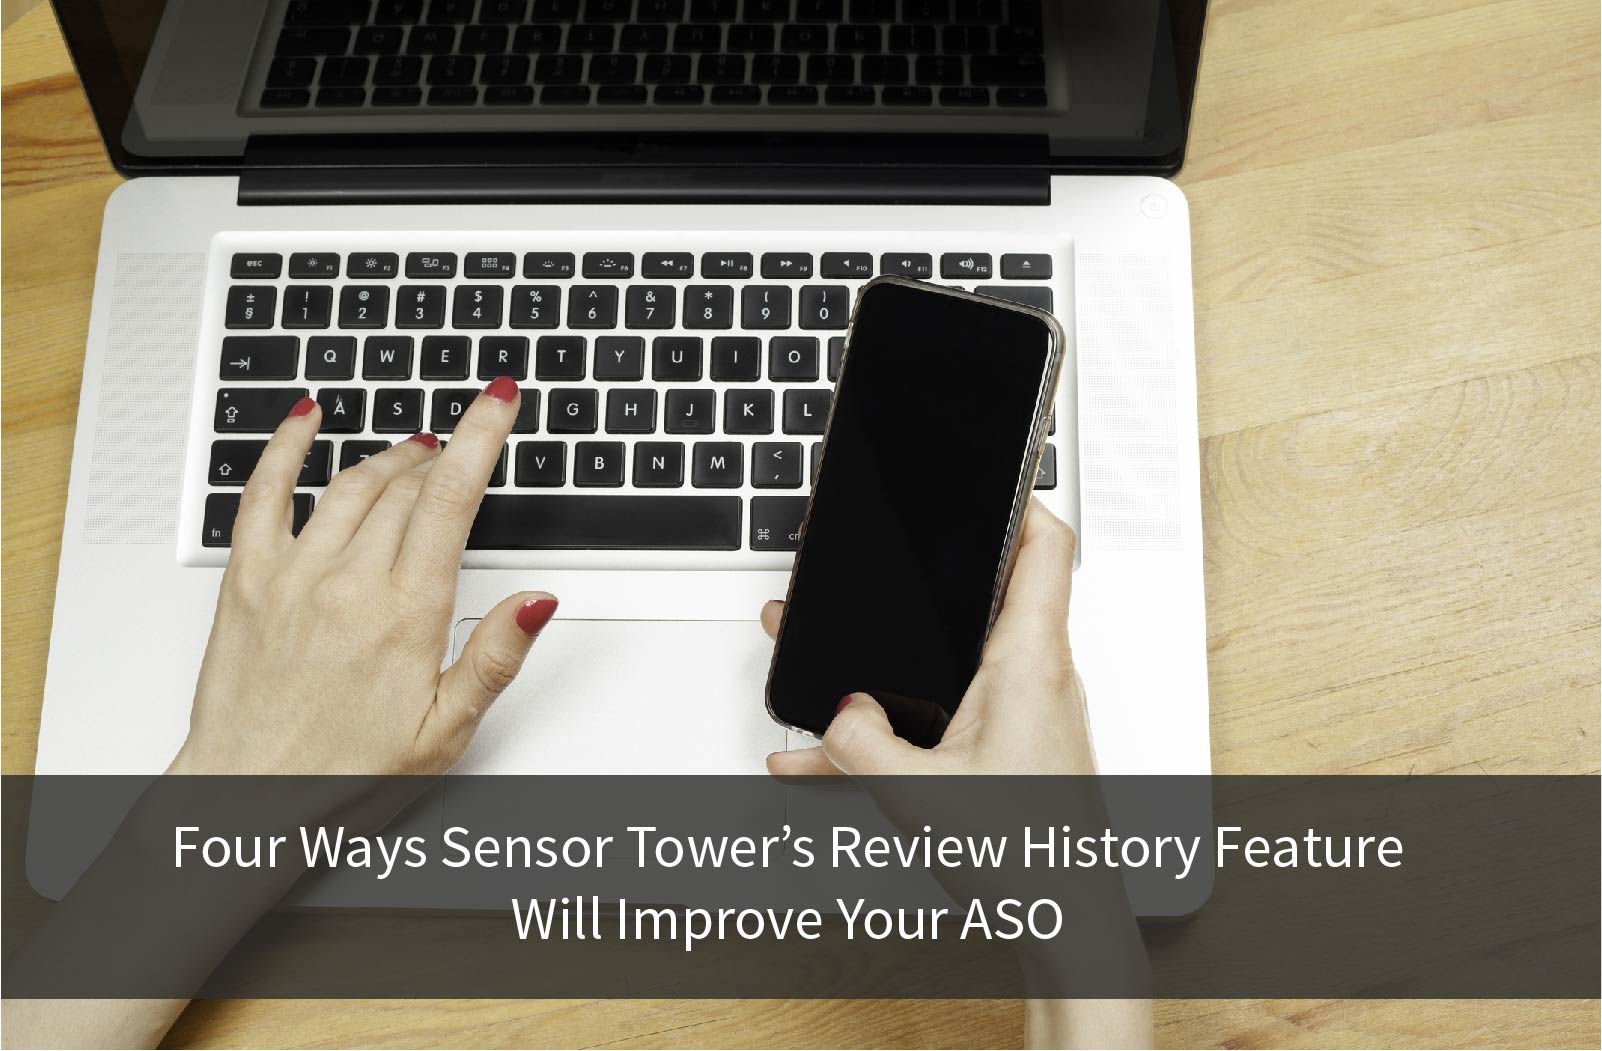 Four Ways Sensor Tower's Review History Feature Will Improve Your ASO